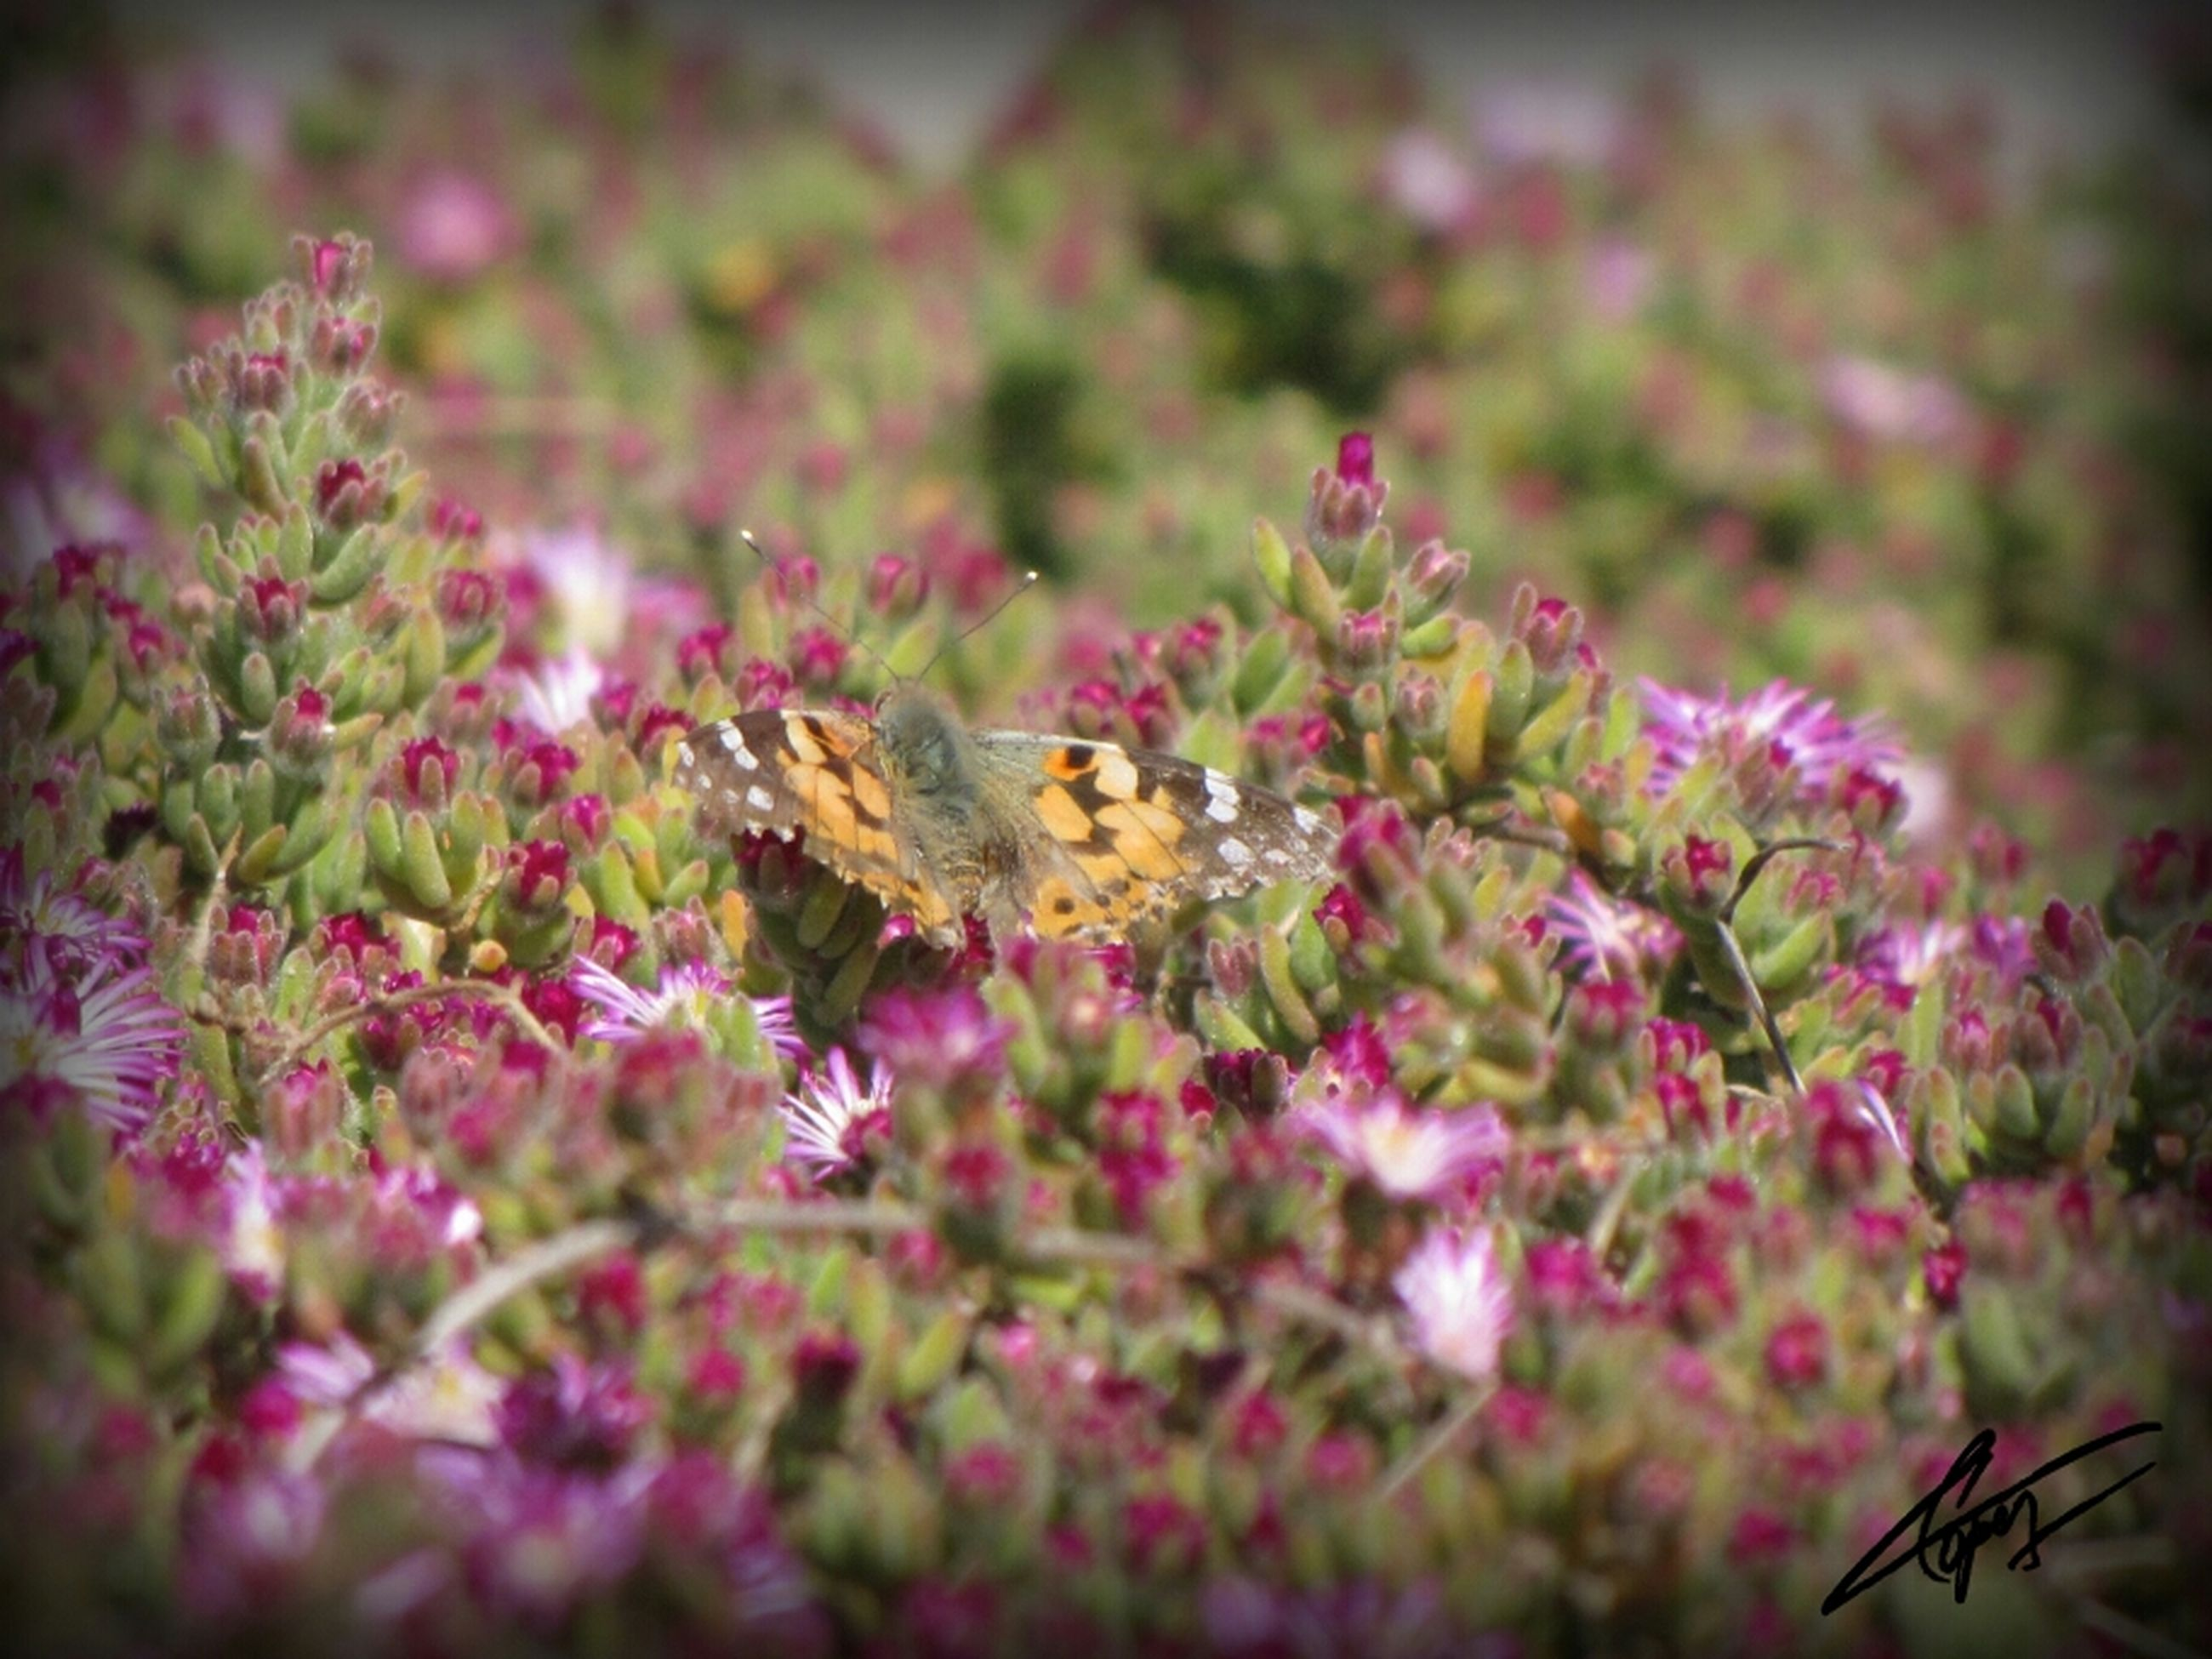 animal themes, animals in the wild, one animal, insect, wildlife, flower, pollination, beauty in nature, fragility, nature, bee, growth, focus on foreground, freshness, close-up, selective focus, plant, butterfly, symbiotic relationship, petal